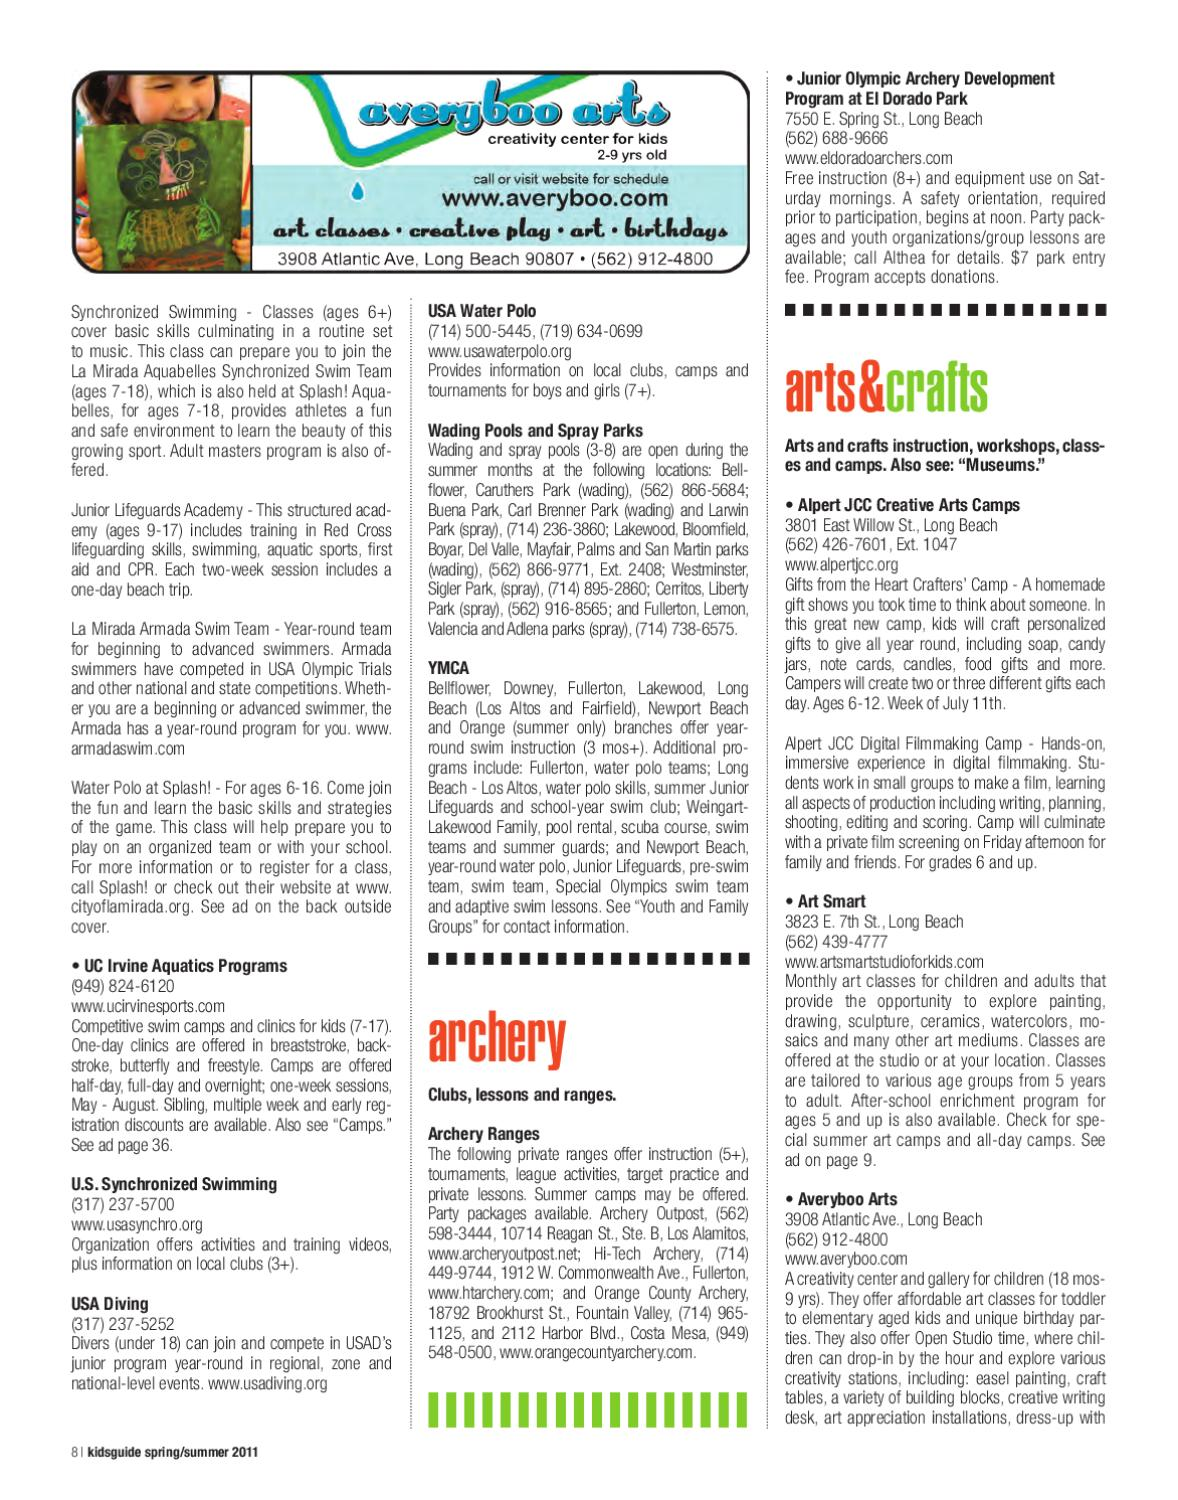 Kidsguide Spring/Summer 2011 by Kidsguide - issuu